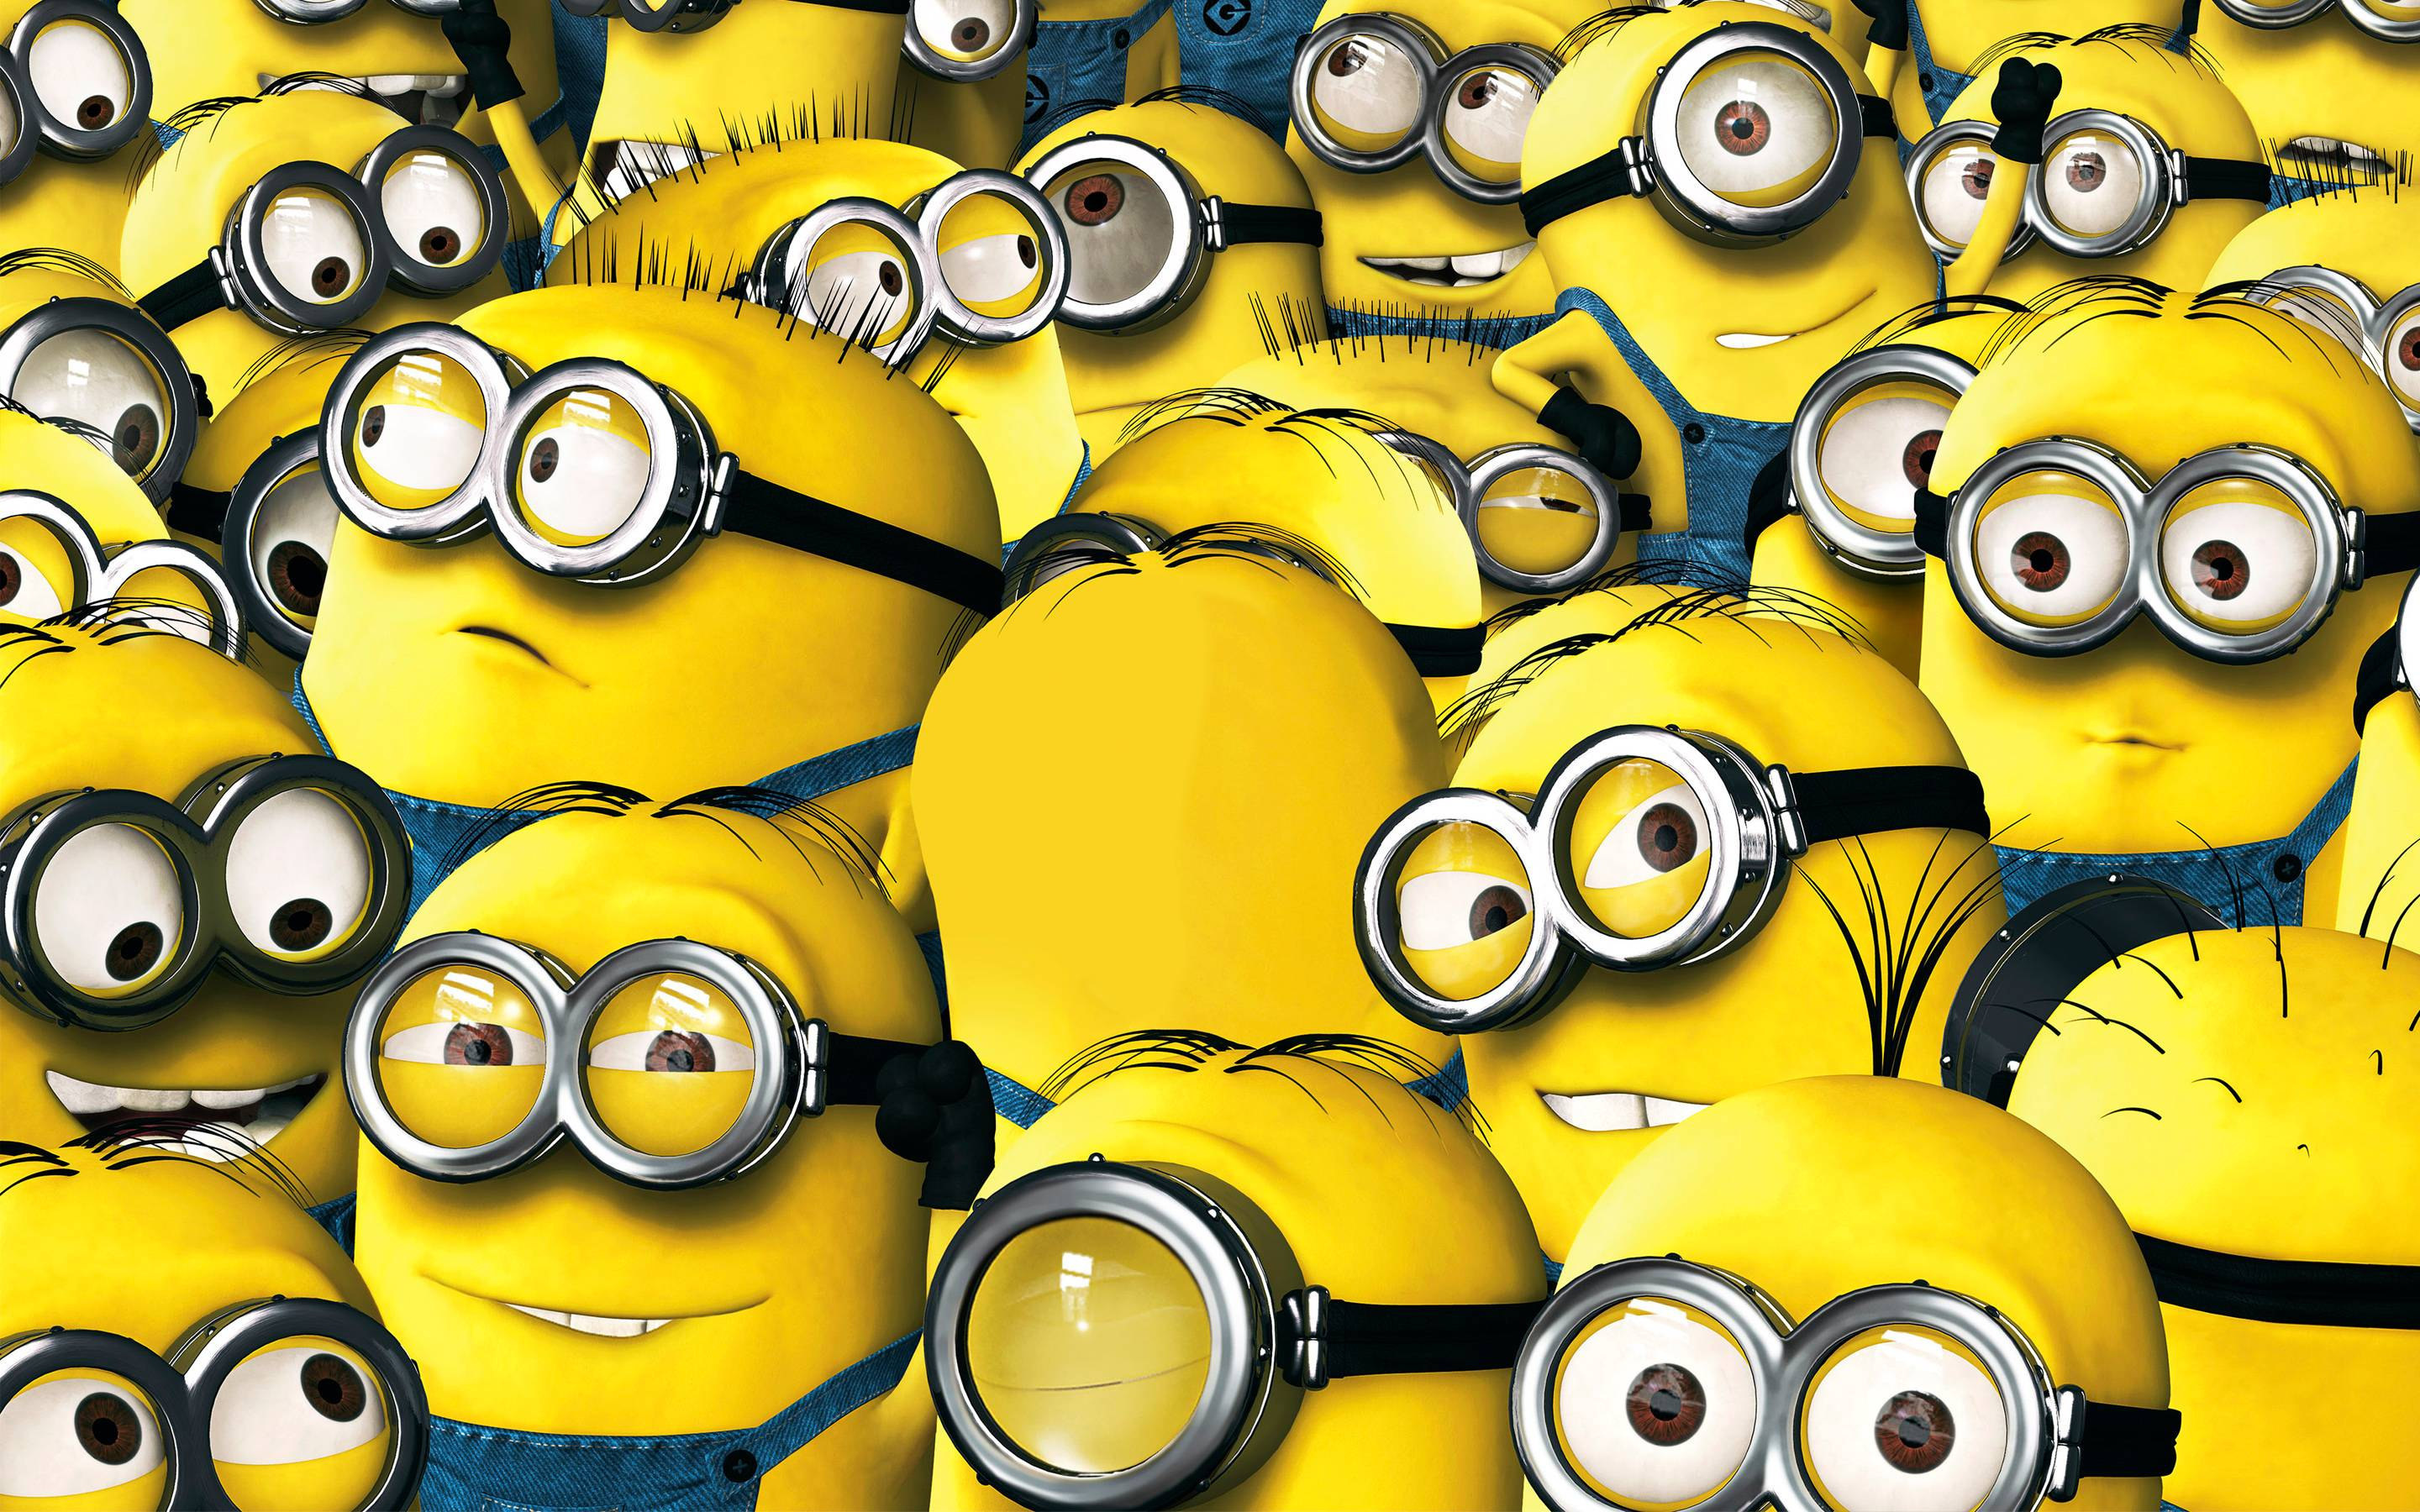 Minion Wallpapers   Top Minion Backgrounds   WallpaperAccess 2880x1800